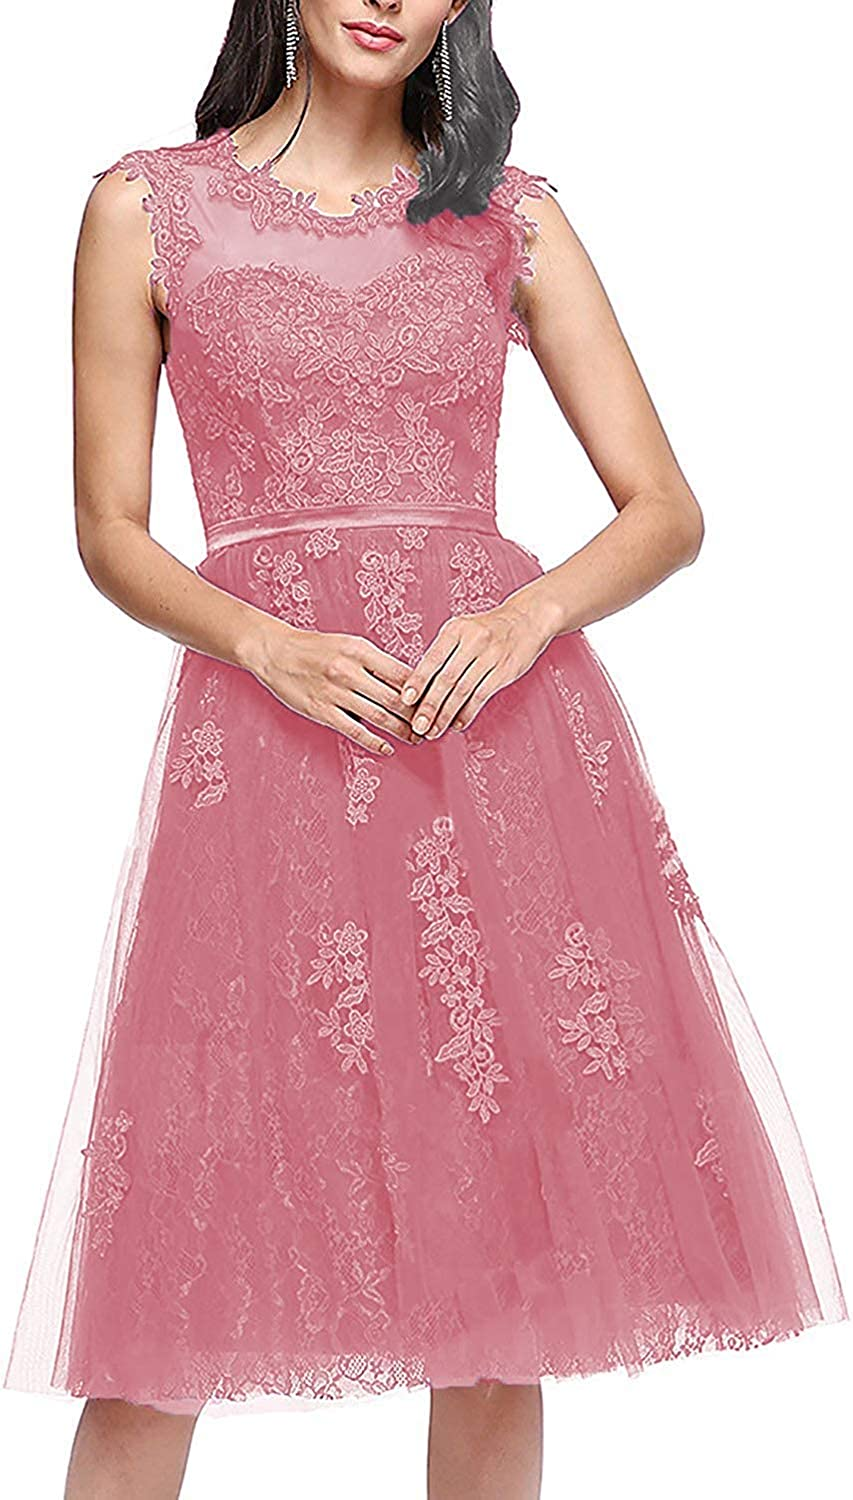 Bridesmaid Dresses Short Homecoming Dress Lace Cocktail Party Gowns Prom Gown Knee Length